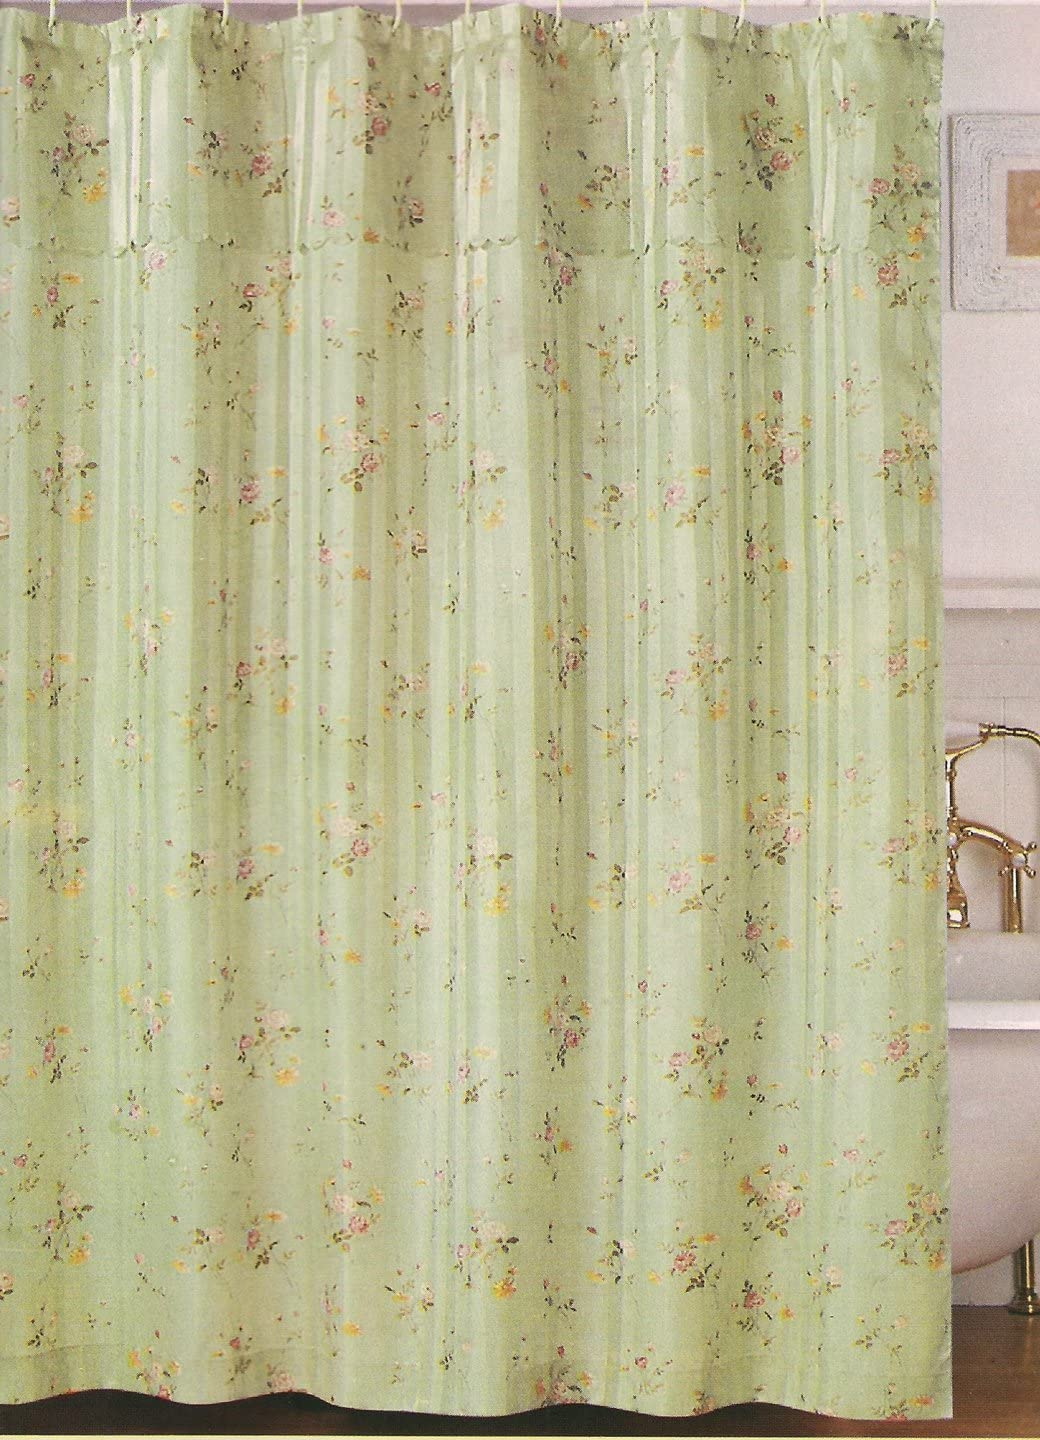 Beatrice Home Fashions Penny Shower Curtain W/att. Valance (Sage)